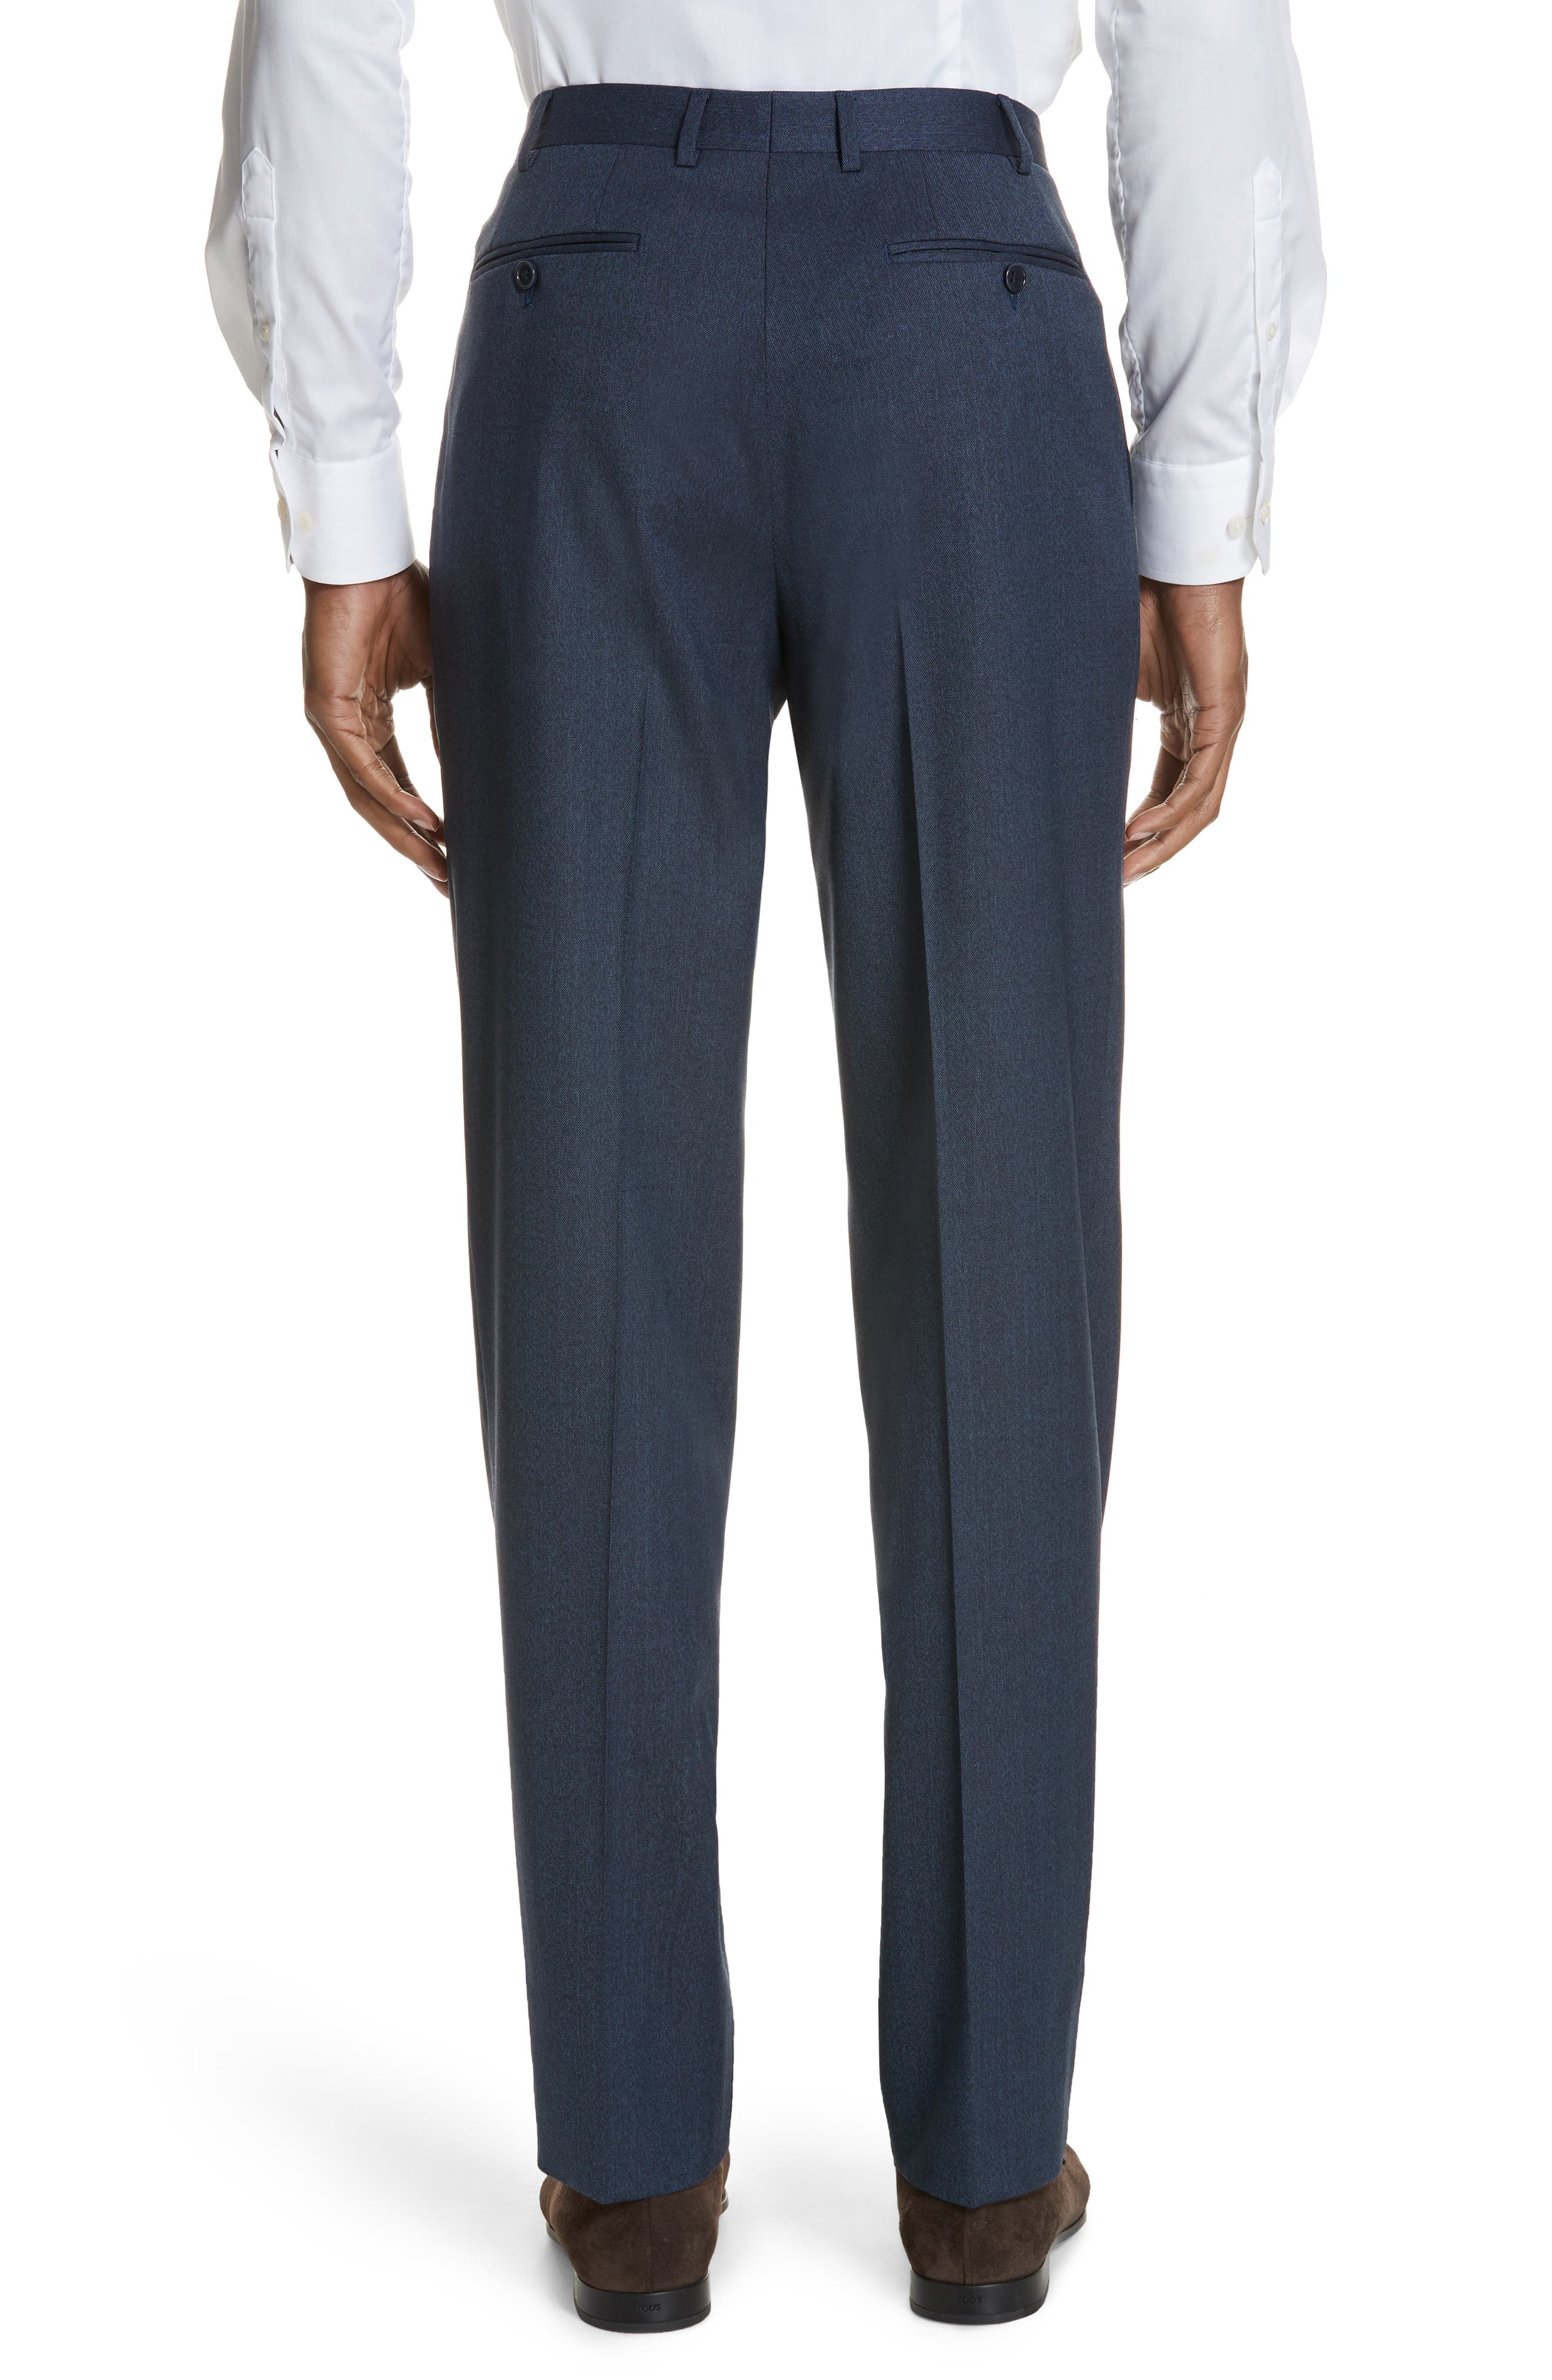 Cavaltry Flat Front Solid Stretch Wool Trousers,                             Alternate thumbnail 2, color,                             DARK BLUE